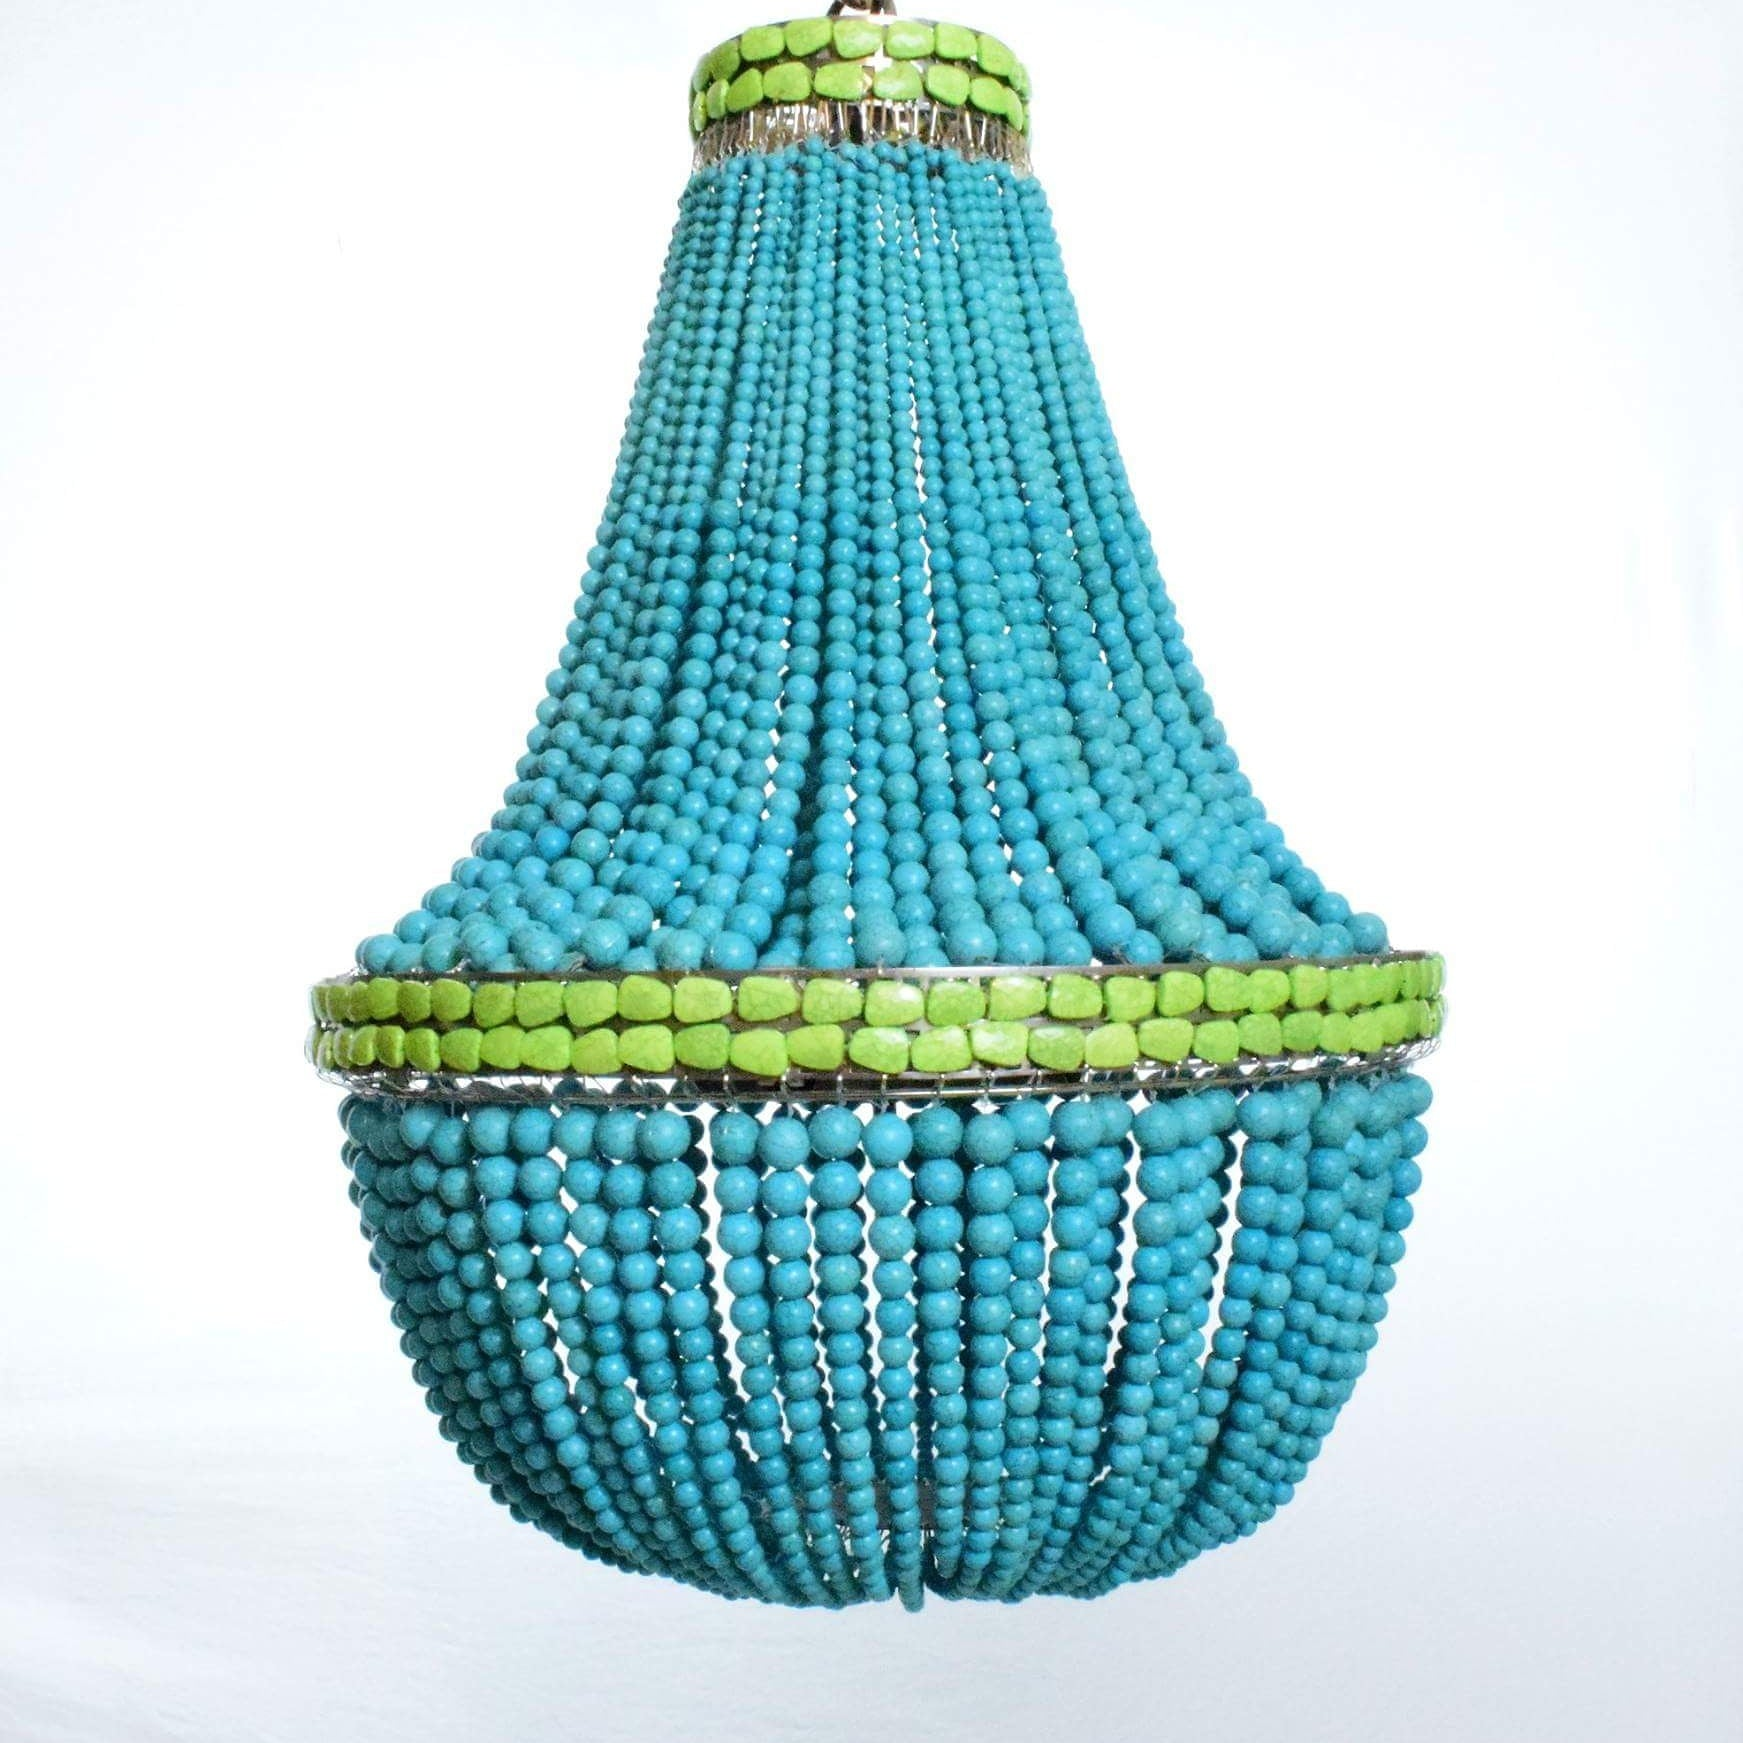 turquoise chandelier lighting. Nicole - Turquoise Stone Empire Chandelier With Green Band Au Courant Interiors Lighting